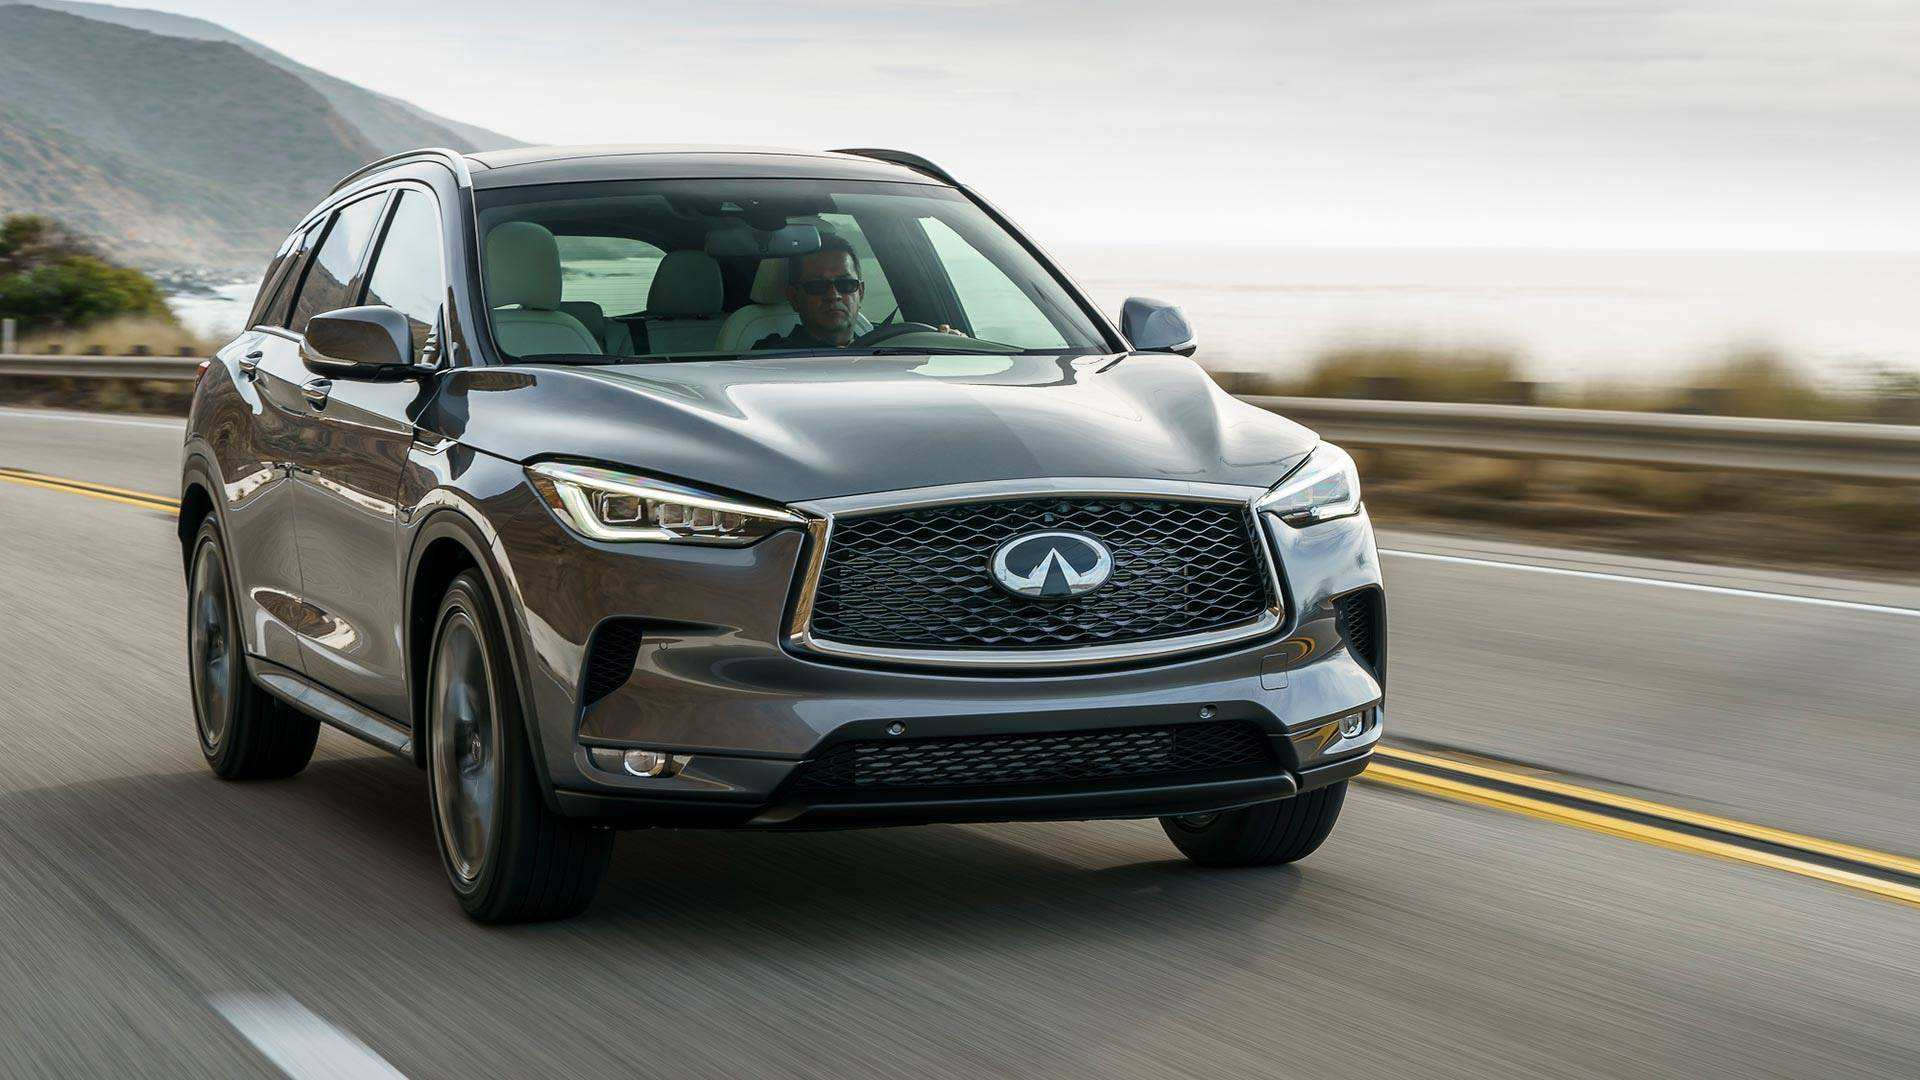 95 Gallery of 2020 Infiniti Qx50 Luxe New Concept Spesification for 2020 Infiniti Qx50 Luxe New Concept